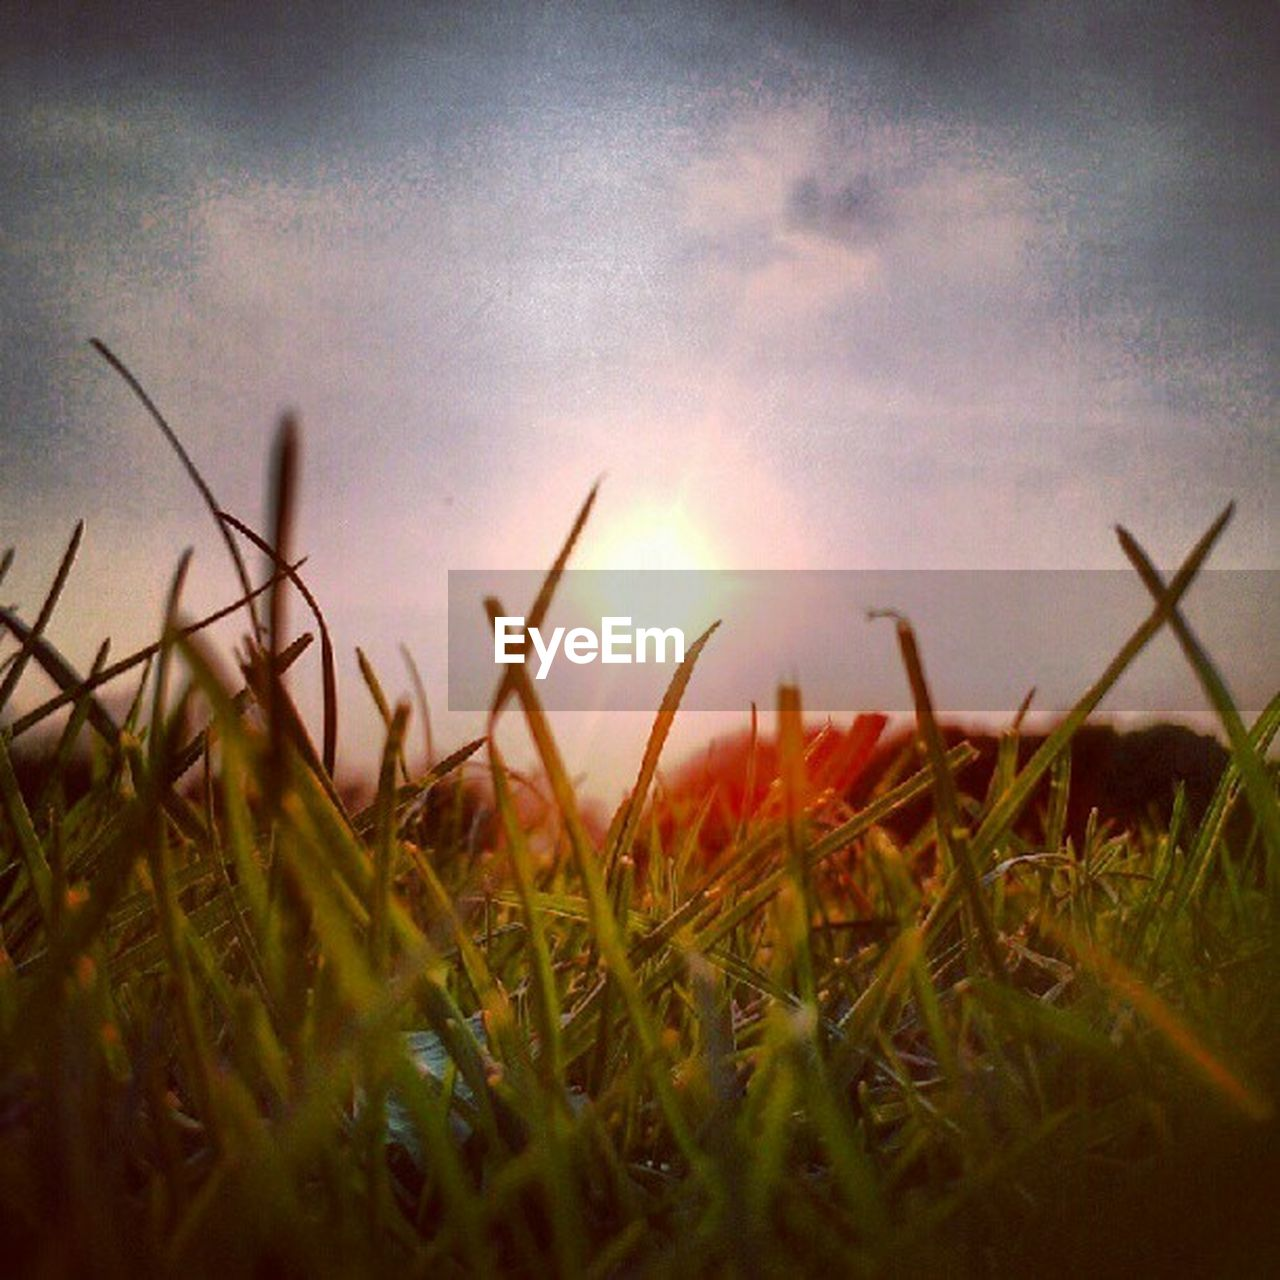 grass, sunset, sun, growth, nature, field, sky, no people, summer, outdoors, beauty in nature, close-up, day